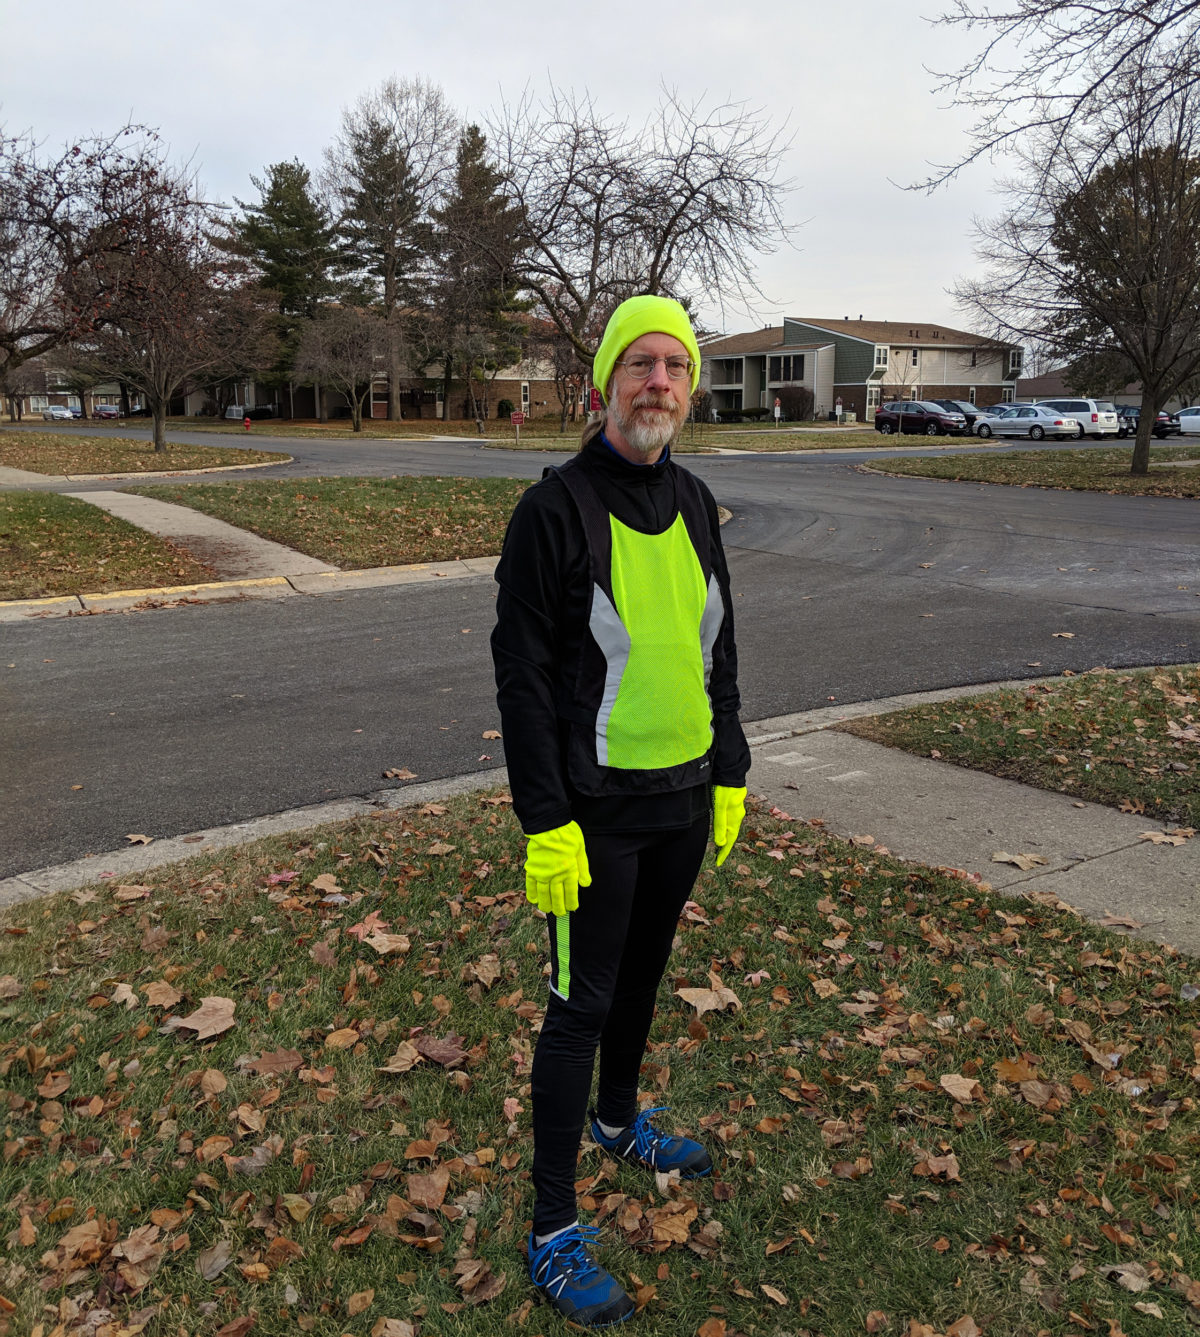 Achievement unlocked: Winter running habit